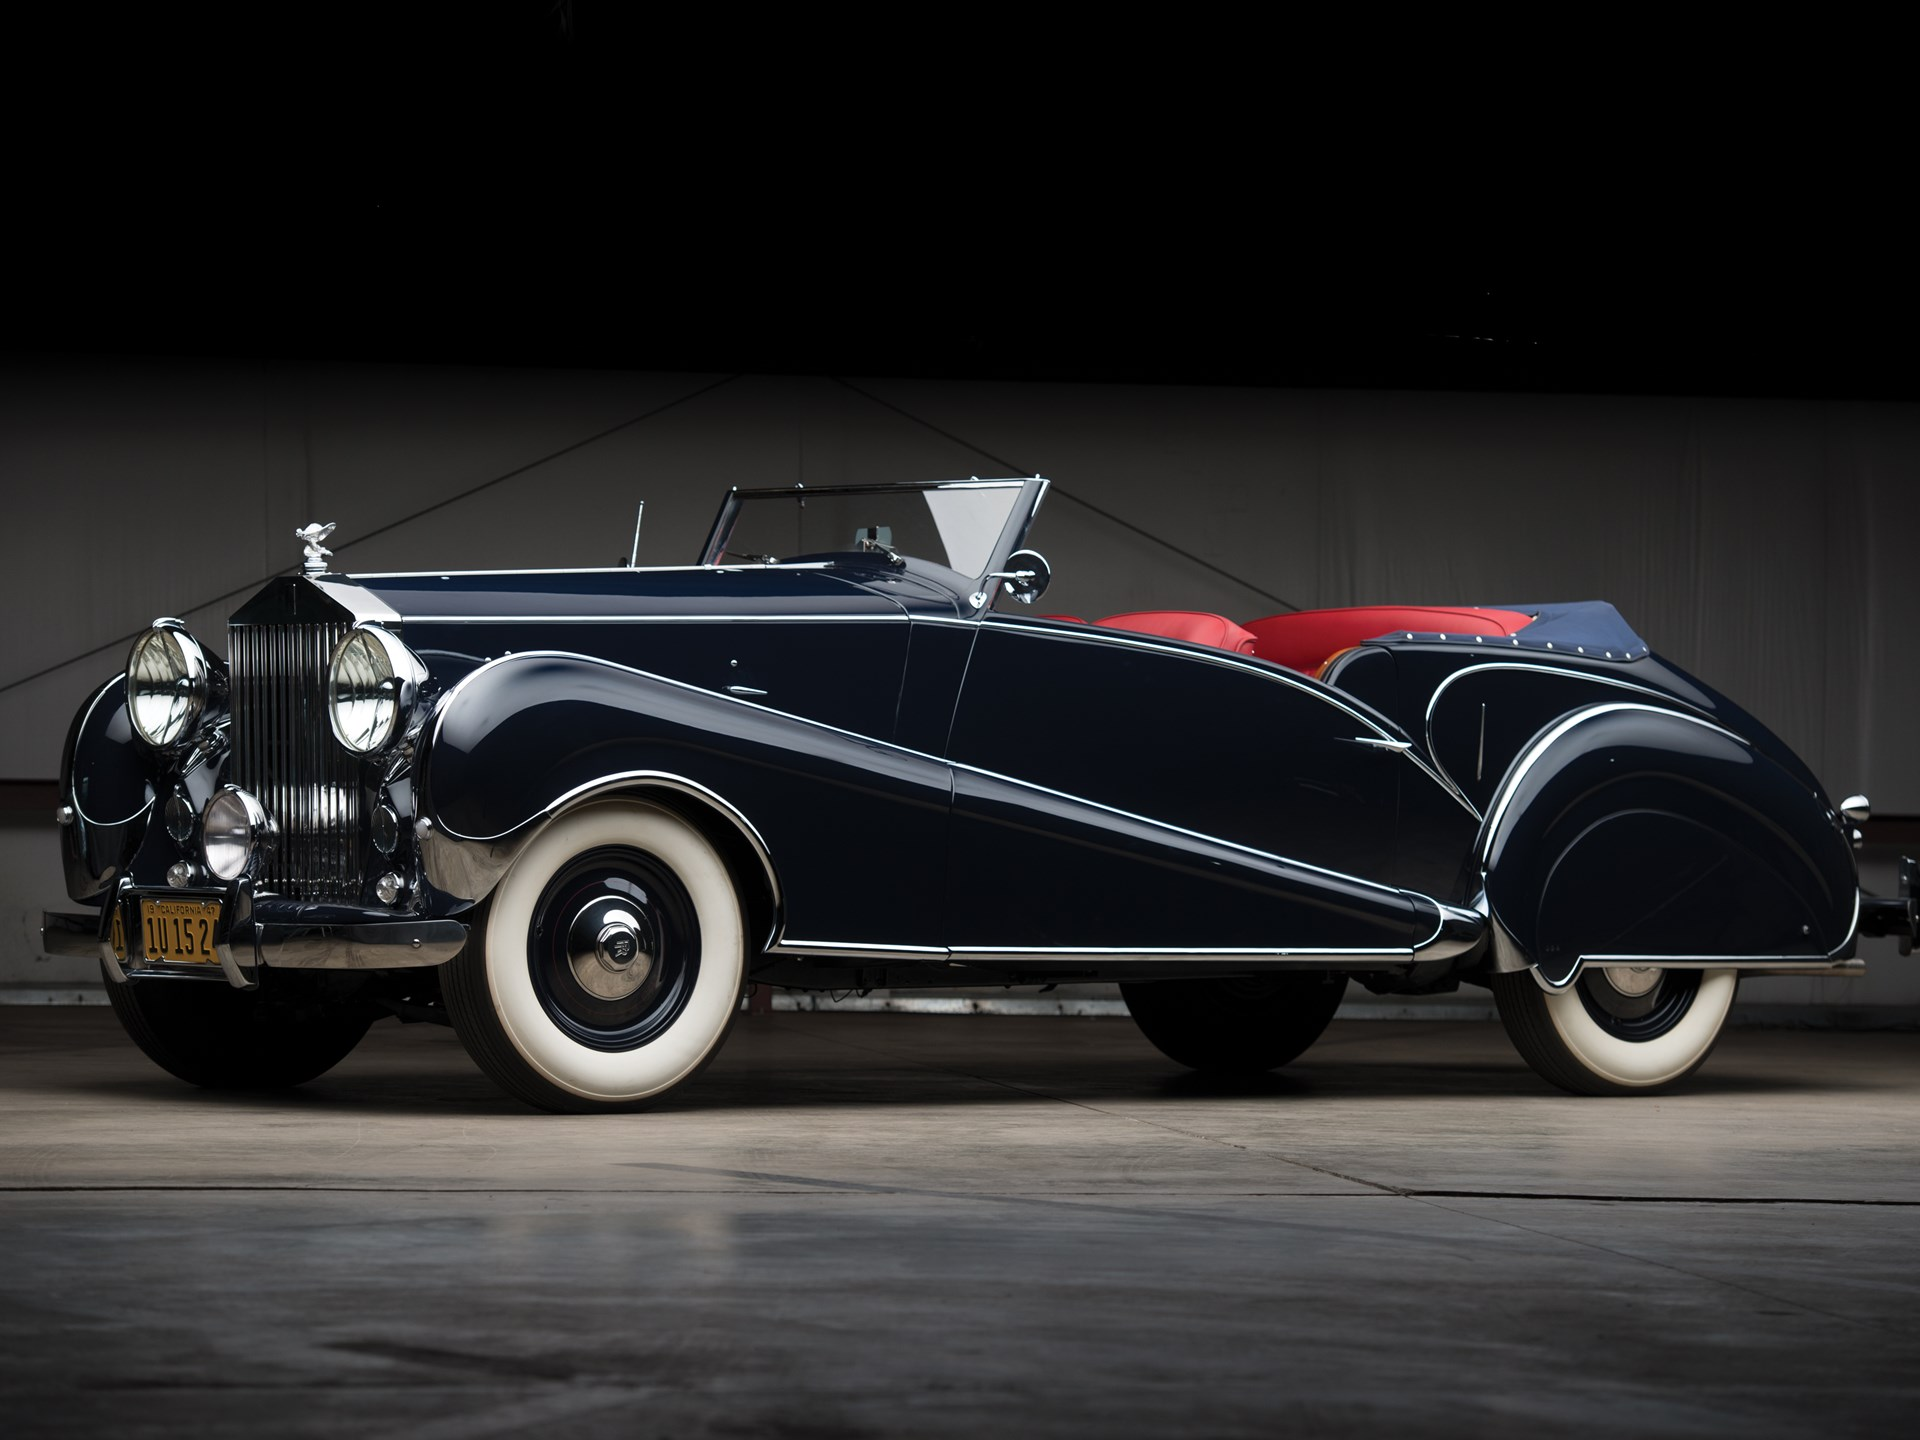 1947 Rolls-Royce Silver Wraith Drophead Coupe by Inskip